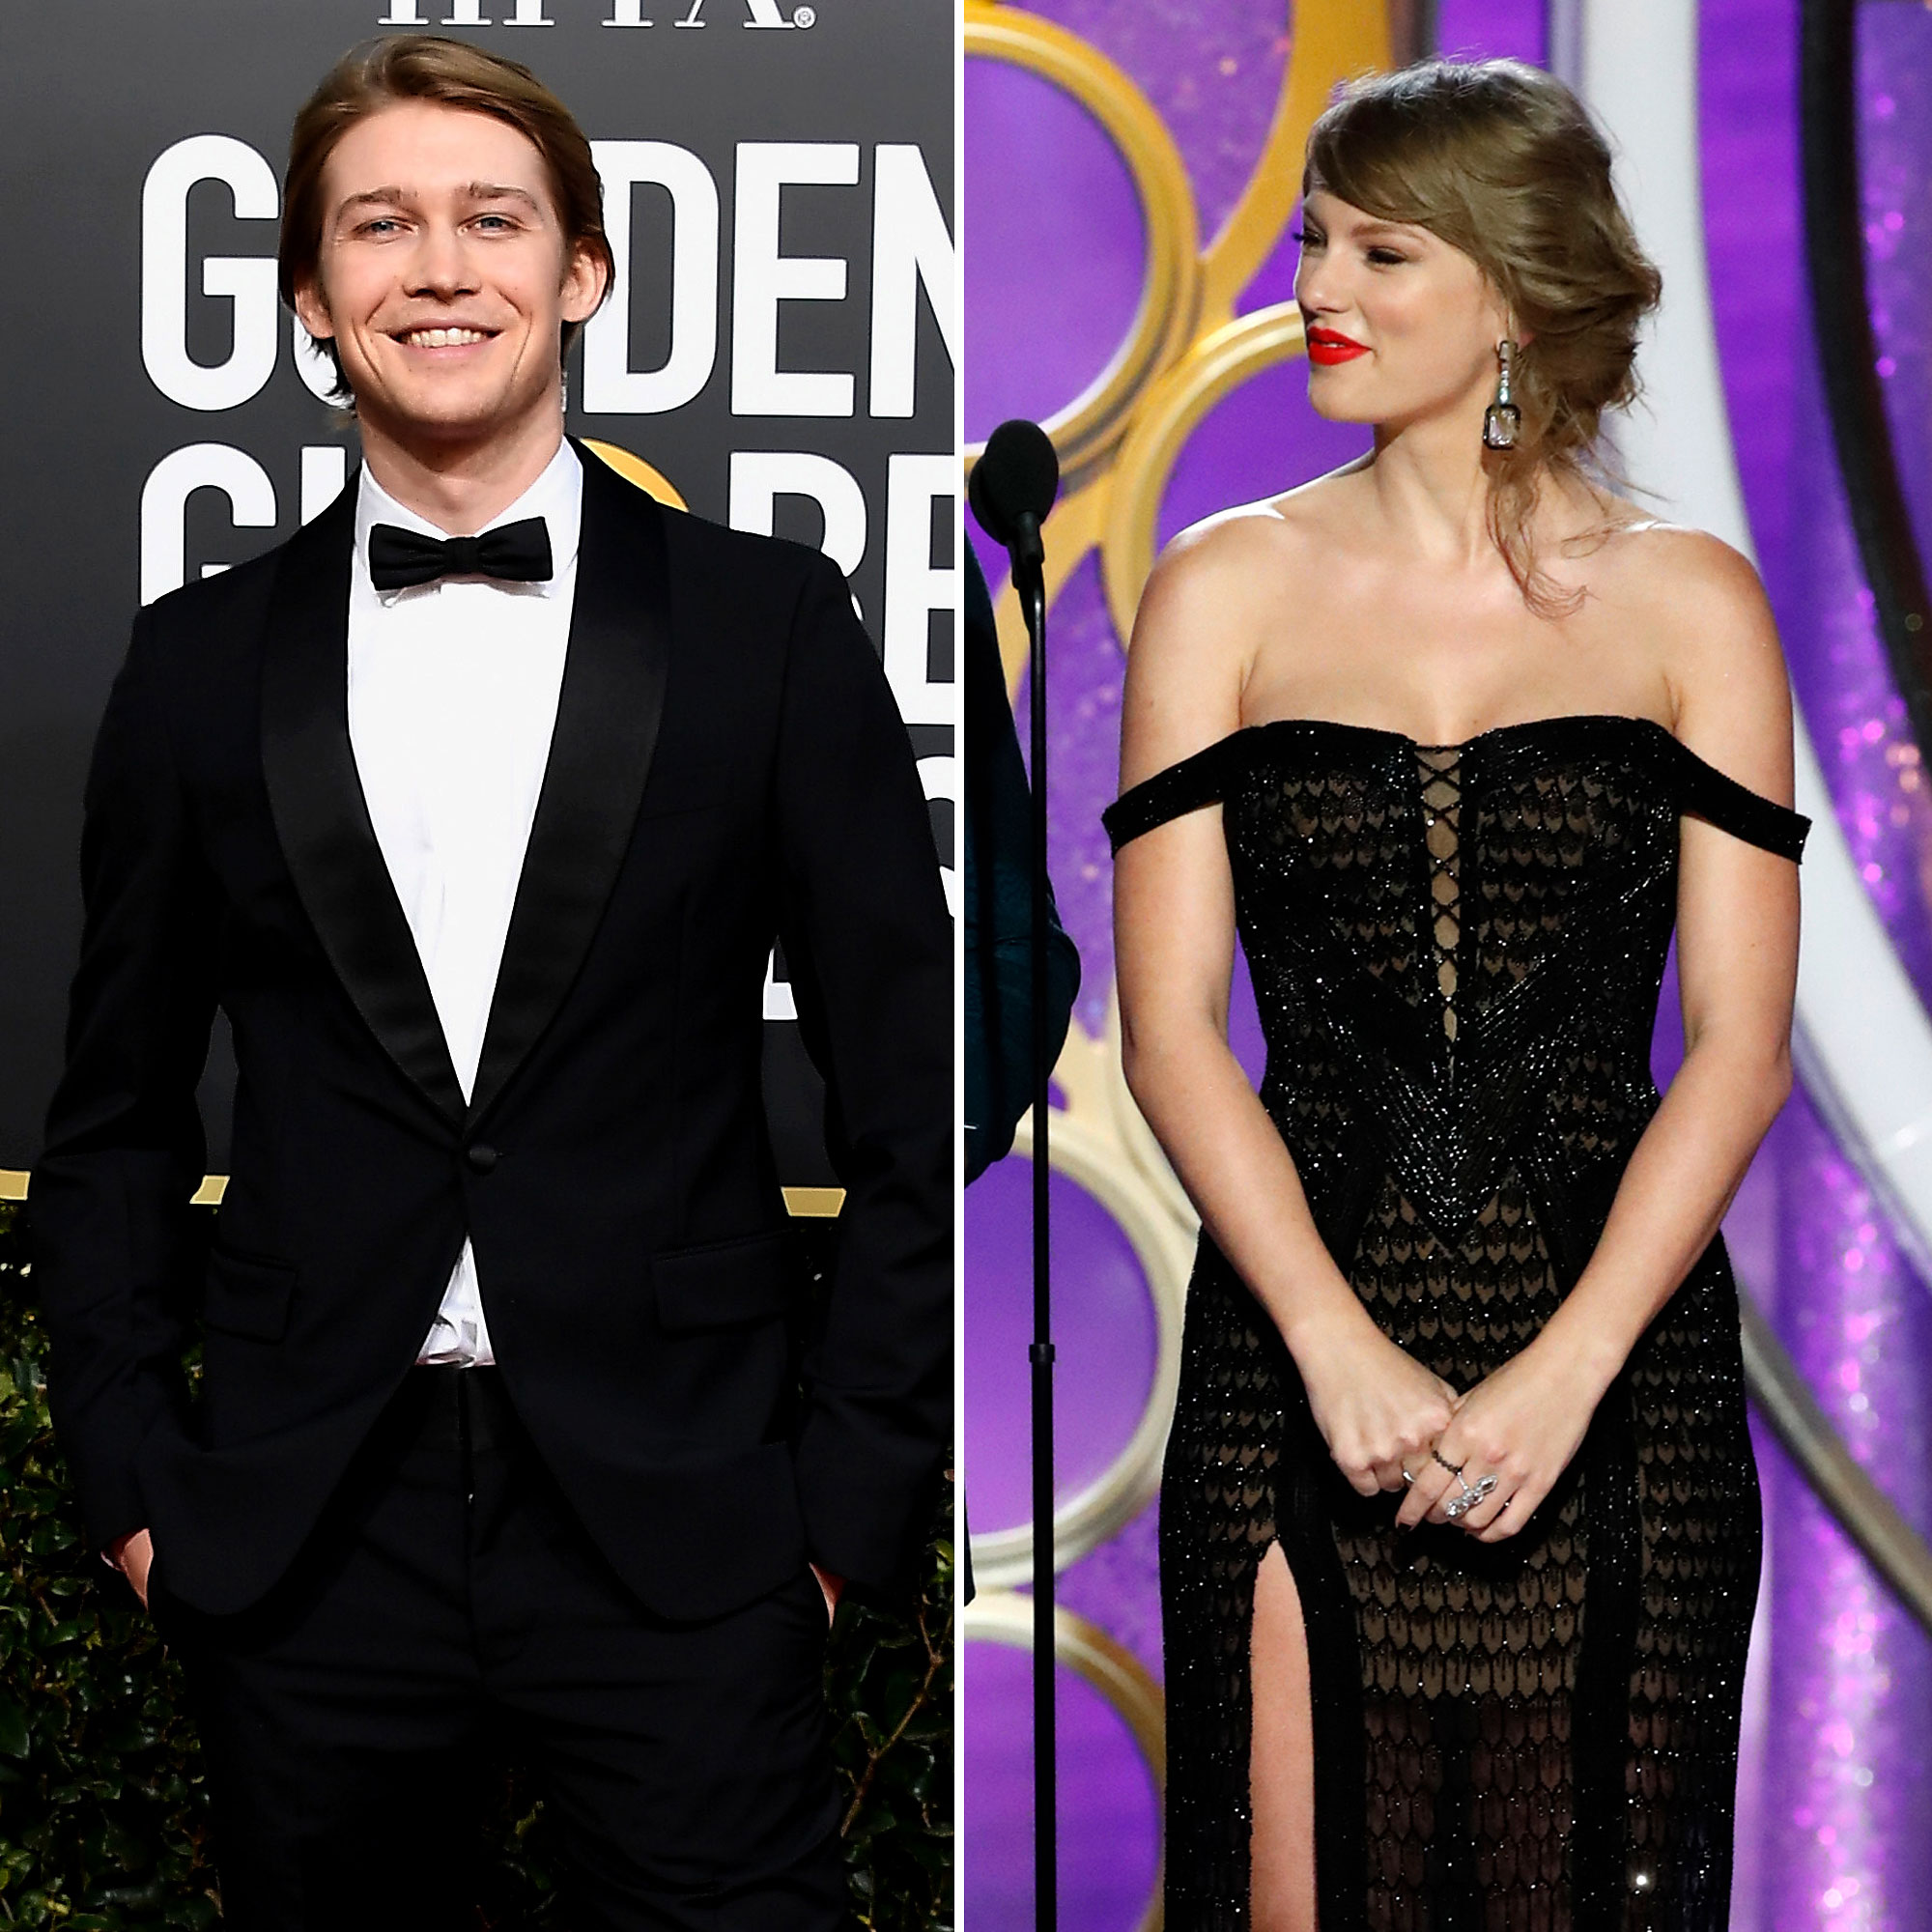 "Taylor Swift and Joe Alwyn: A Timeline of Their 'Gorgeous' Relationship - The Grammy winner and the actor got flirty with each other at the 2019 Golden Globes, where Swift was a presenter. ""She was smiling at him while she walked off the stage,"" a source told Us of the songstress."